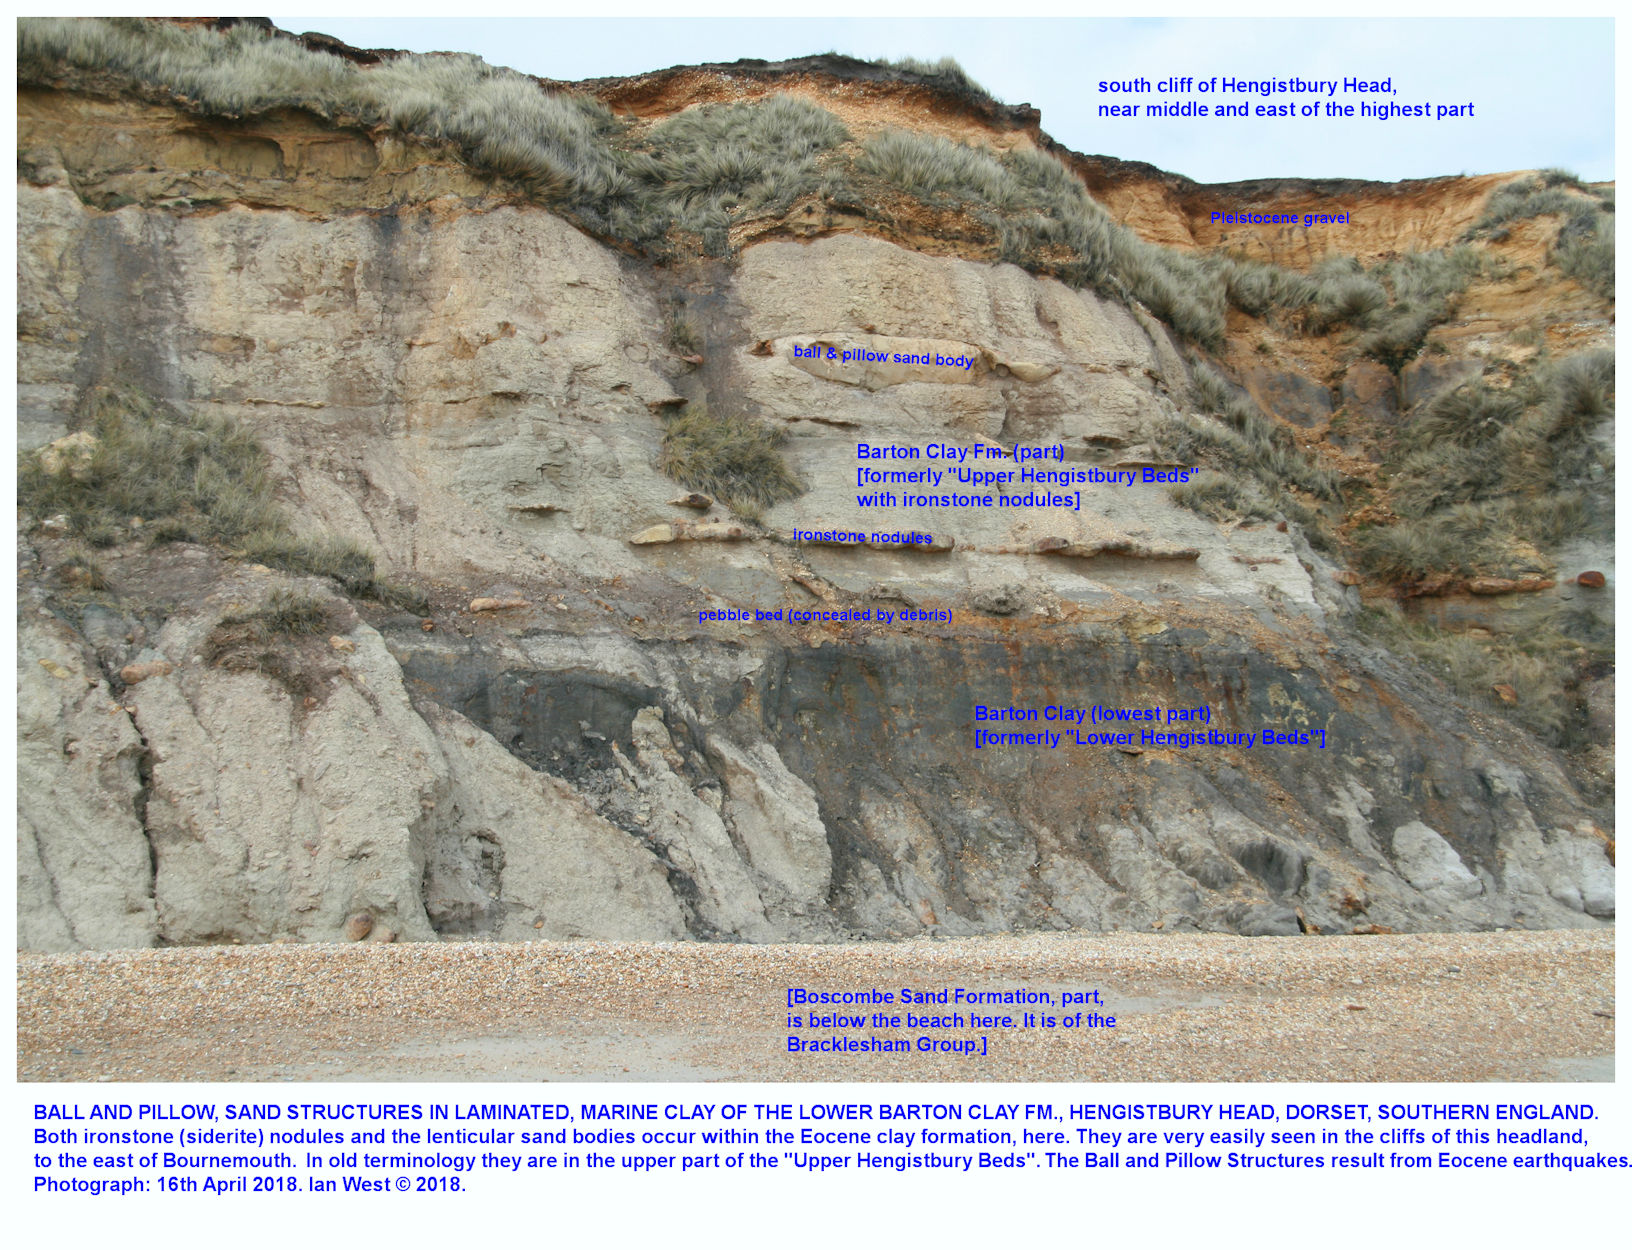 Ball and pillow structure shown by sandstone in a matrix of laminated, grey, Barton Clay, also with numerous ironstone or siderite nodules, Hengistbury Head, 16th April 2018, formerly Upper Hengistbury Beds over Lower Hengistbury Beds